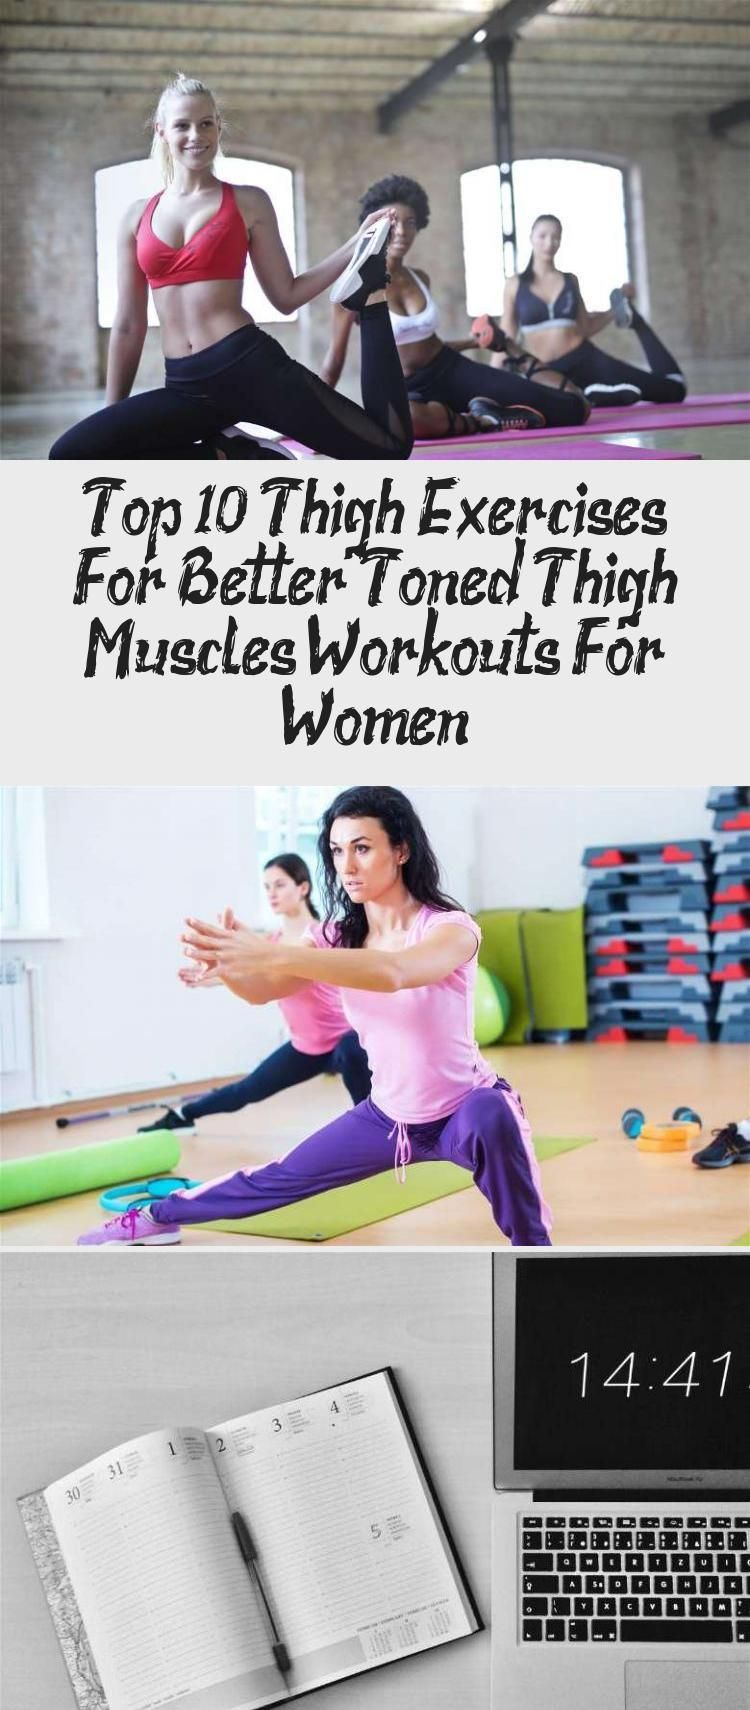 Top 10 Thigh Exercises For Better Toned Thigh Muscles: Workouts For Women - Healthy Food -  #BodybuildingRecipes #BodybuildingBeforeAndAfter #BodybuildingModel #OldSchoolBodybuilding   - #better #exercises #Food #getal #healthy #lingrie #loving #muscles #people #presentideasforwomen #thigh #toned #Top #women #womenbodybuilders #workouts